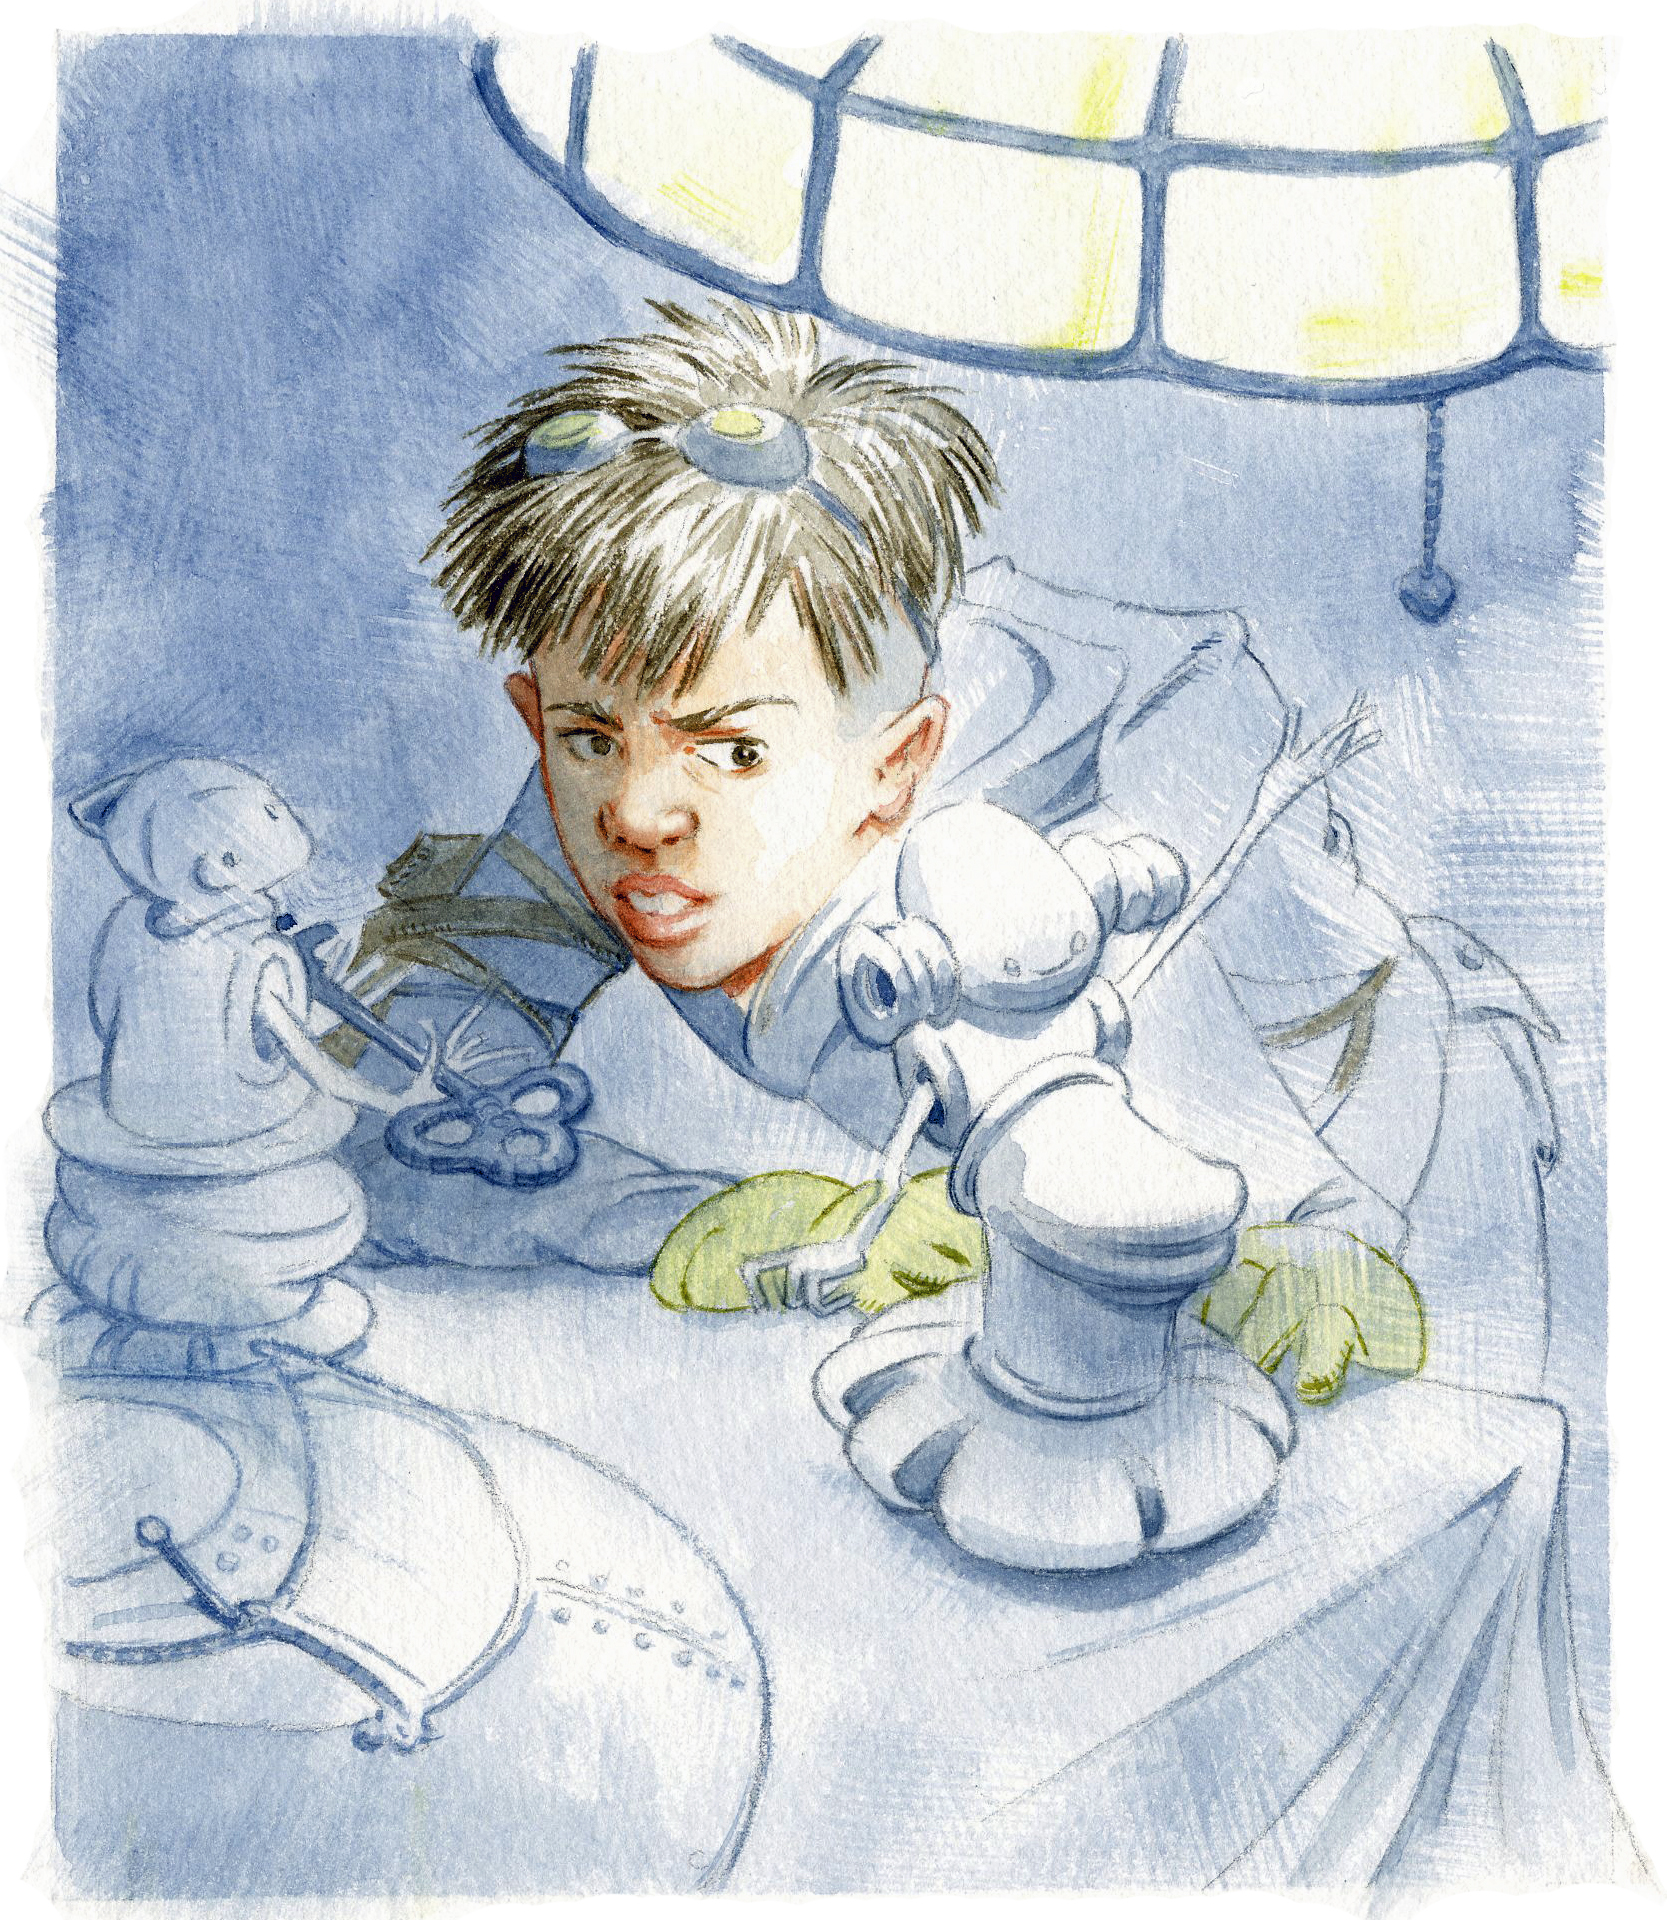 Finalist, Society of Children's Book Writers and Illustrators 2014 Tomie de Paola Award.